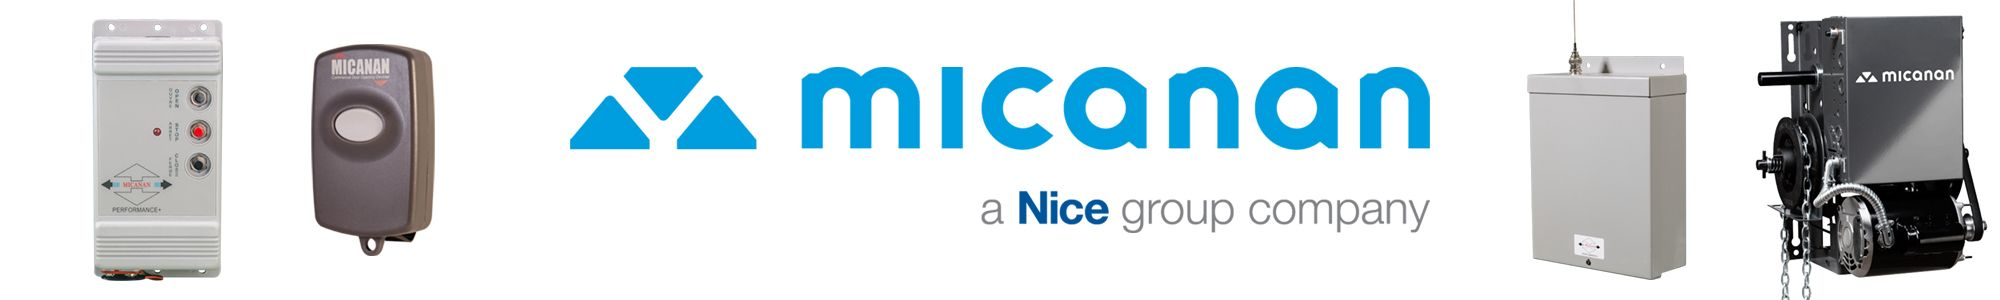 Micanan Systems